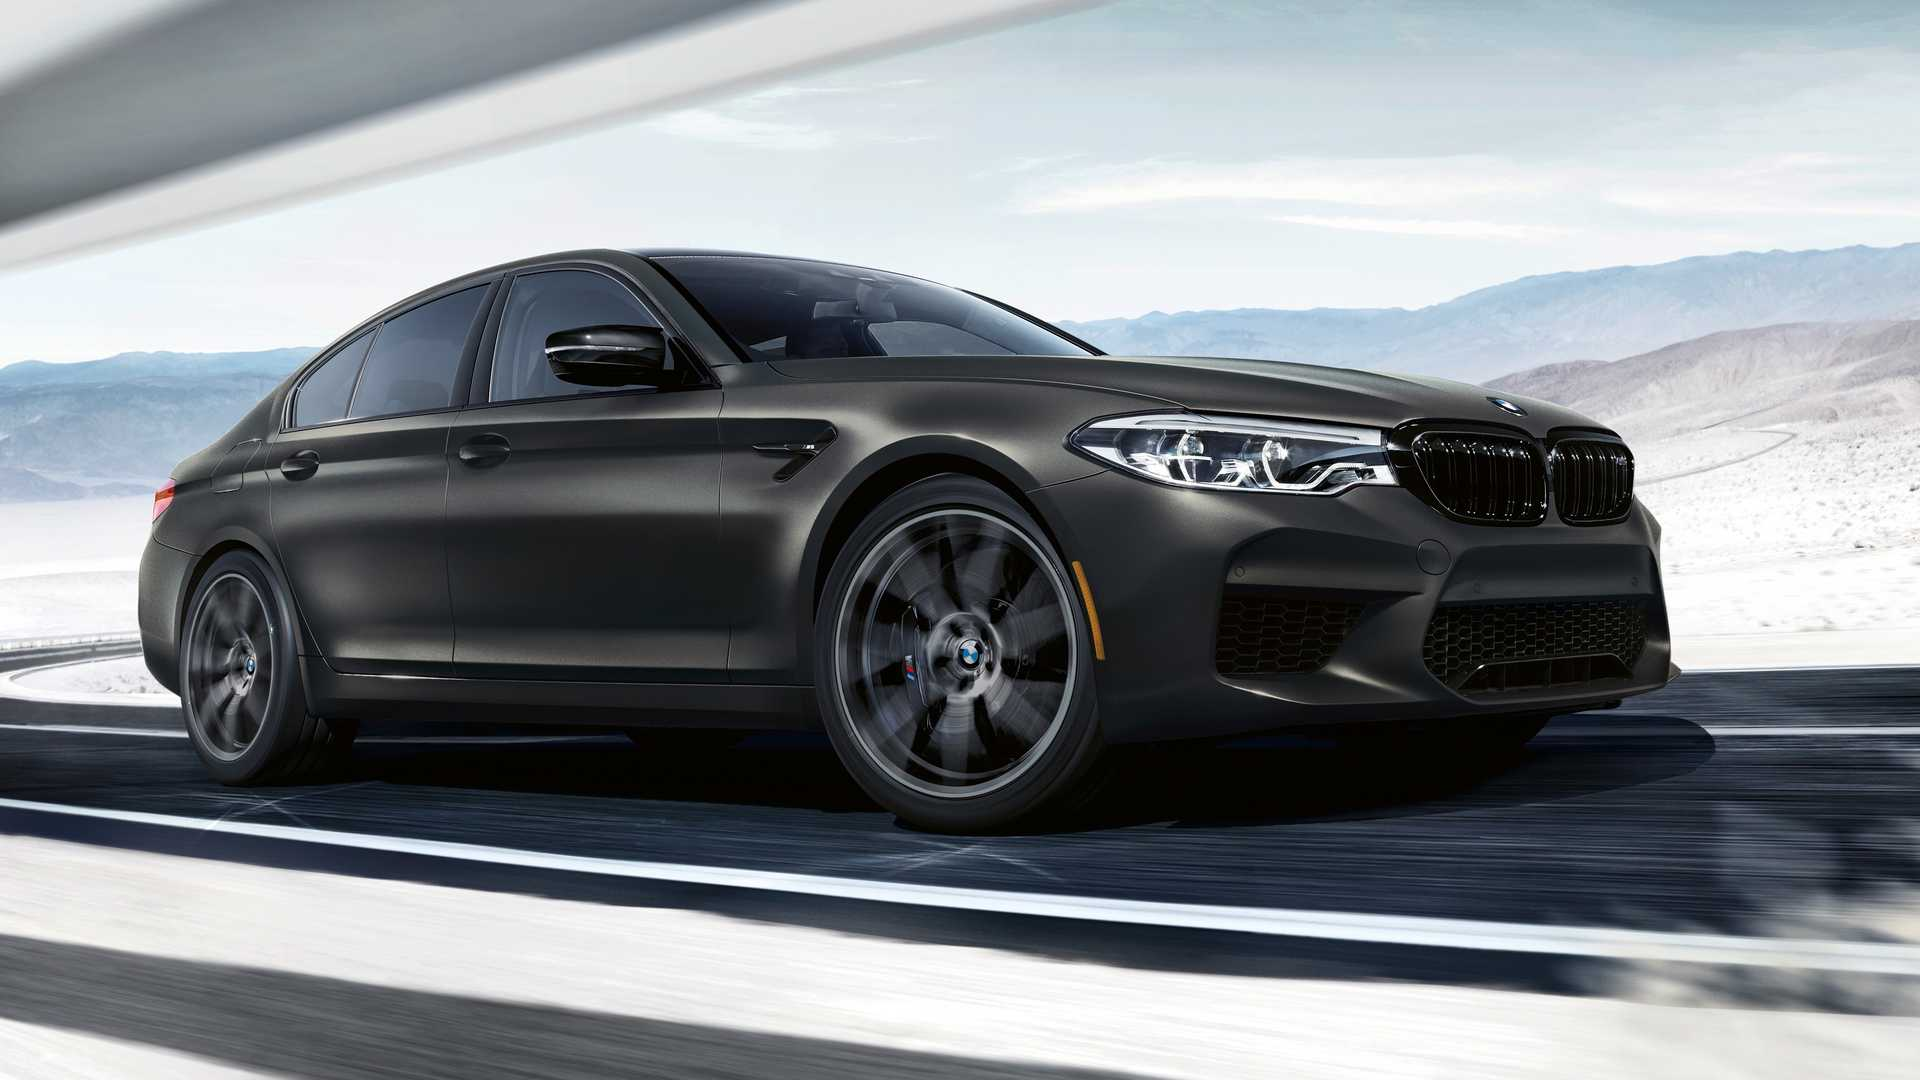 2020 Bmw M5 Edition 35 Years Debuts As A Sinister 617 Hp Sedan